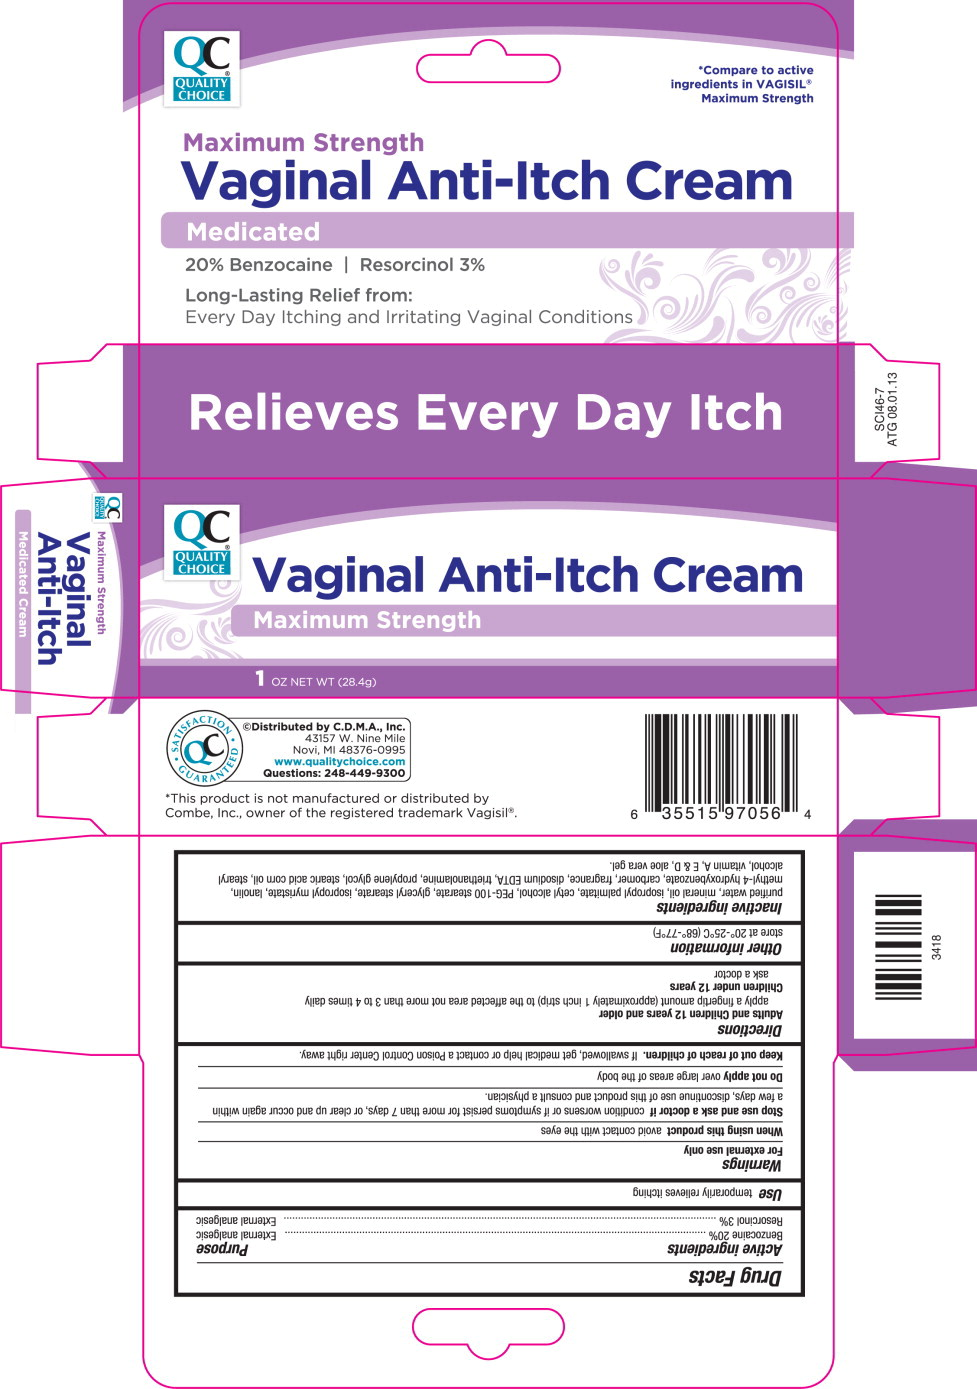 Quality Choice Vaginal Anti-itch Maximum Strength (Benzocaine And Resorcinol) Cream [Chain Drug Marketing Association (Cdma)]